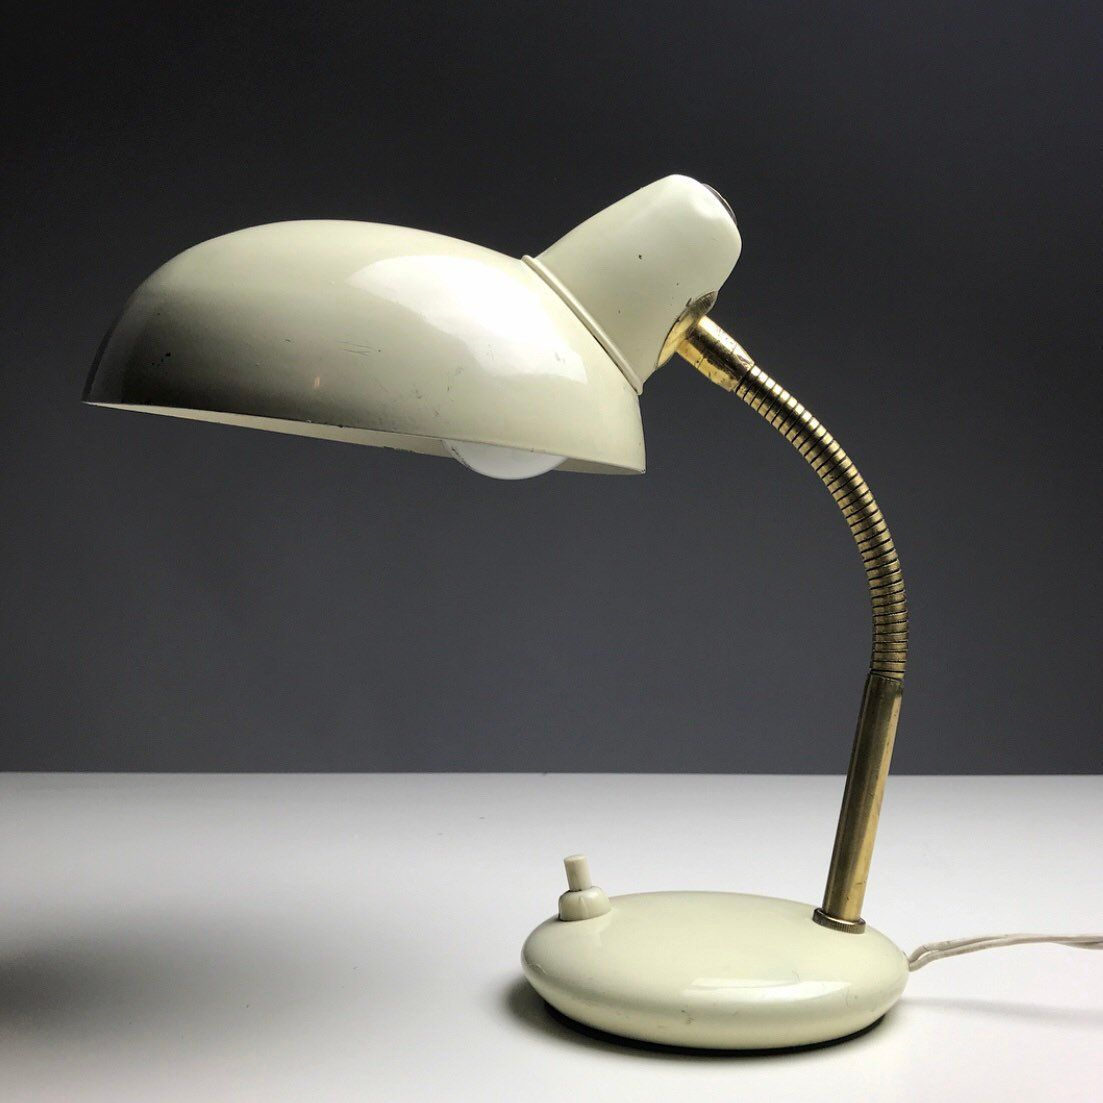 Beautiful Classic Italian Table Lamp From 1950s Mid Century Modern Bauhaus Inspired Industrial Desk Lamp Made In Italy Lamp Industrial Desk Lamp Table Lamp